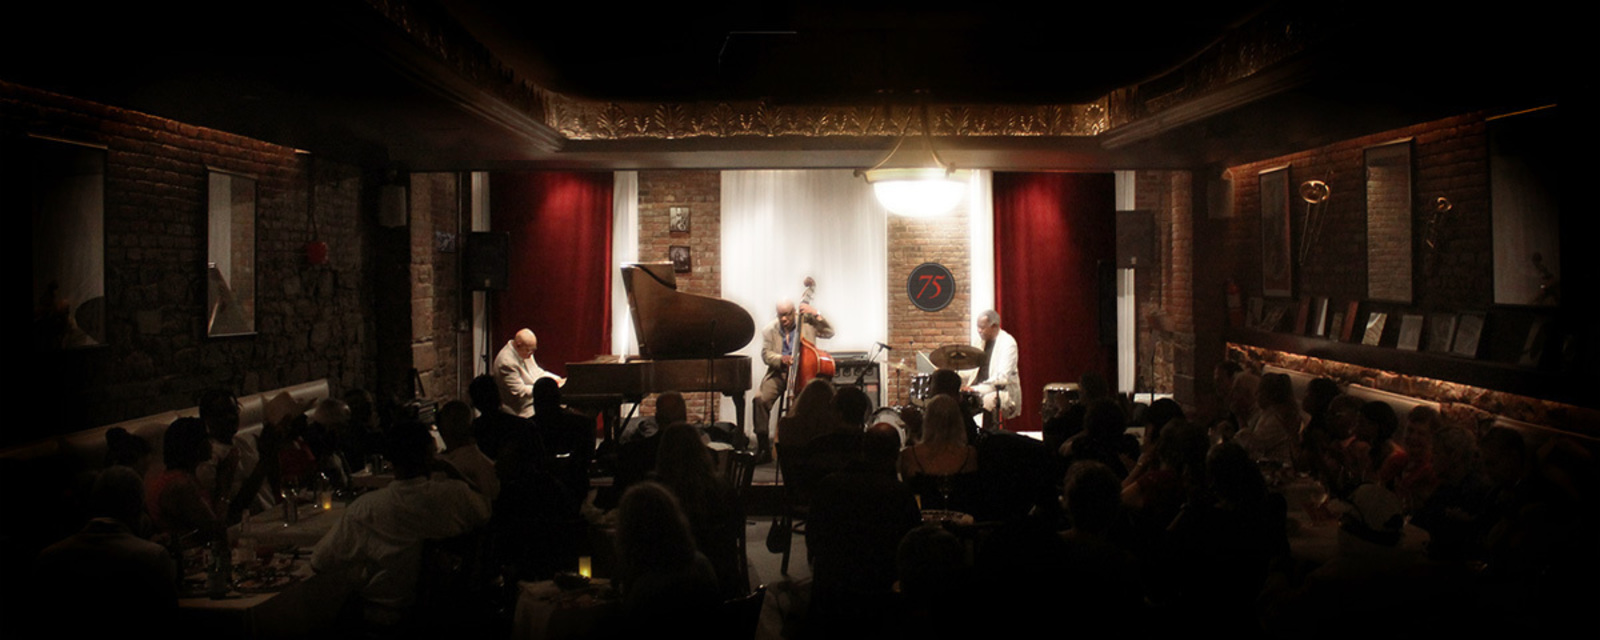 Photos of an evening performance at the club where three musicians on stage entertain the audience